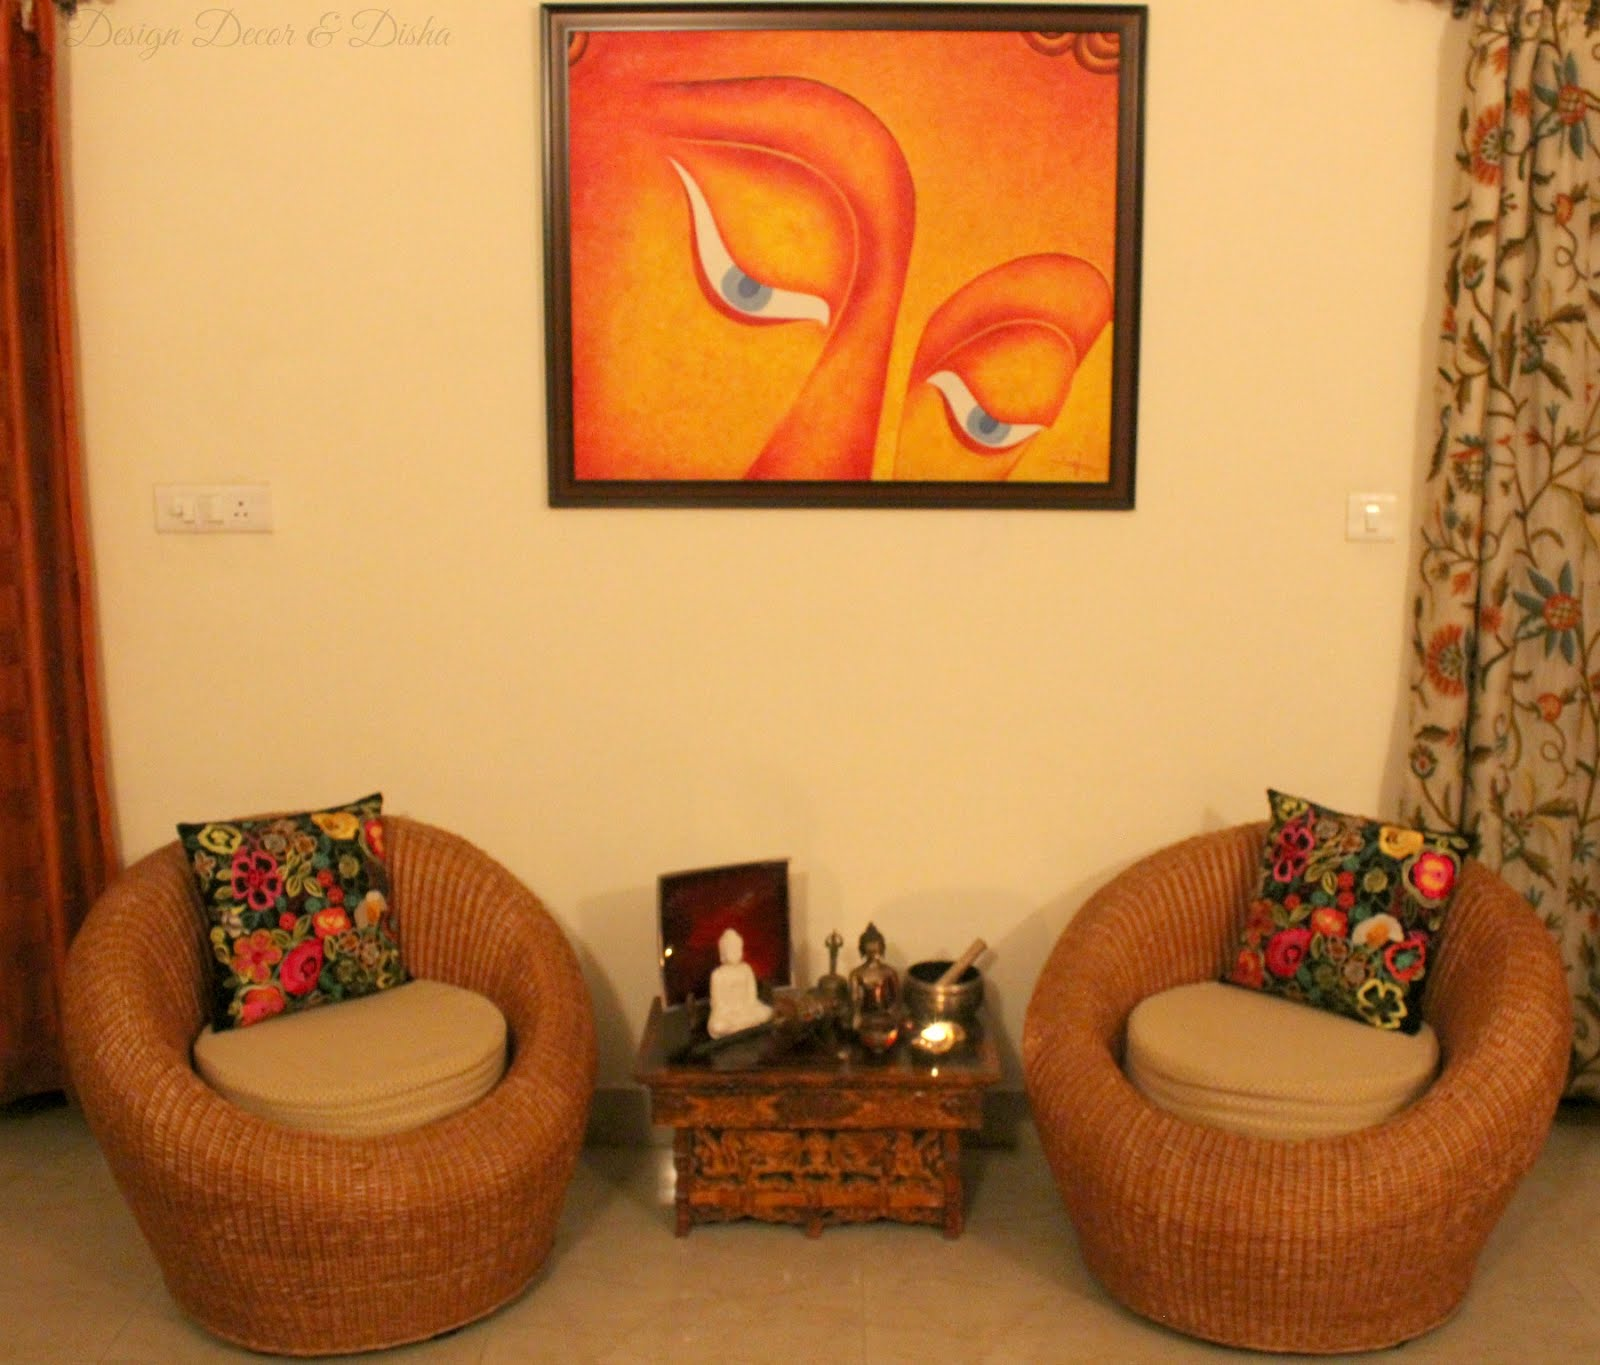 Design decor disha an indian design decor blog home for Home decor stuff